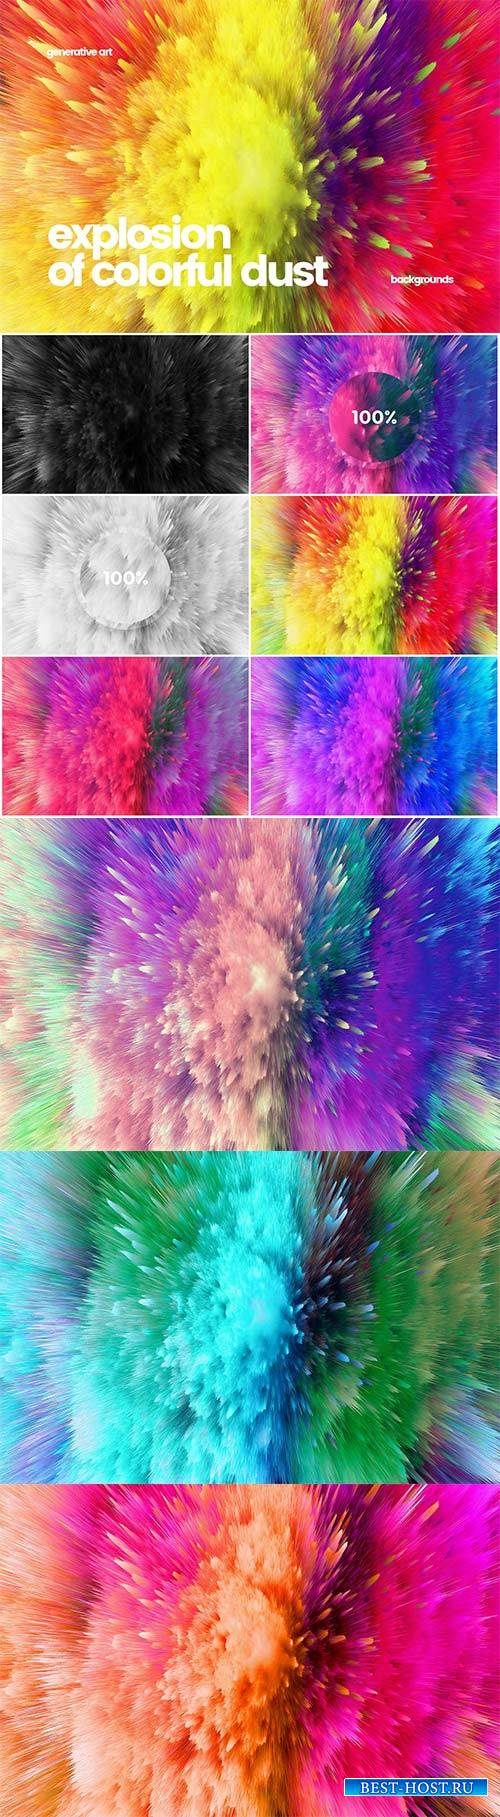 Explosion of Colorful Dust Backgrounds